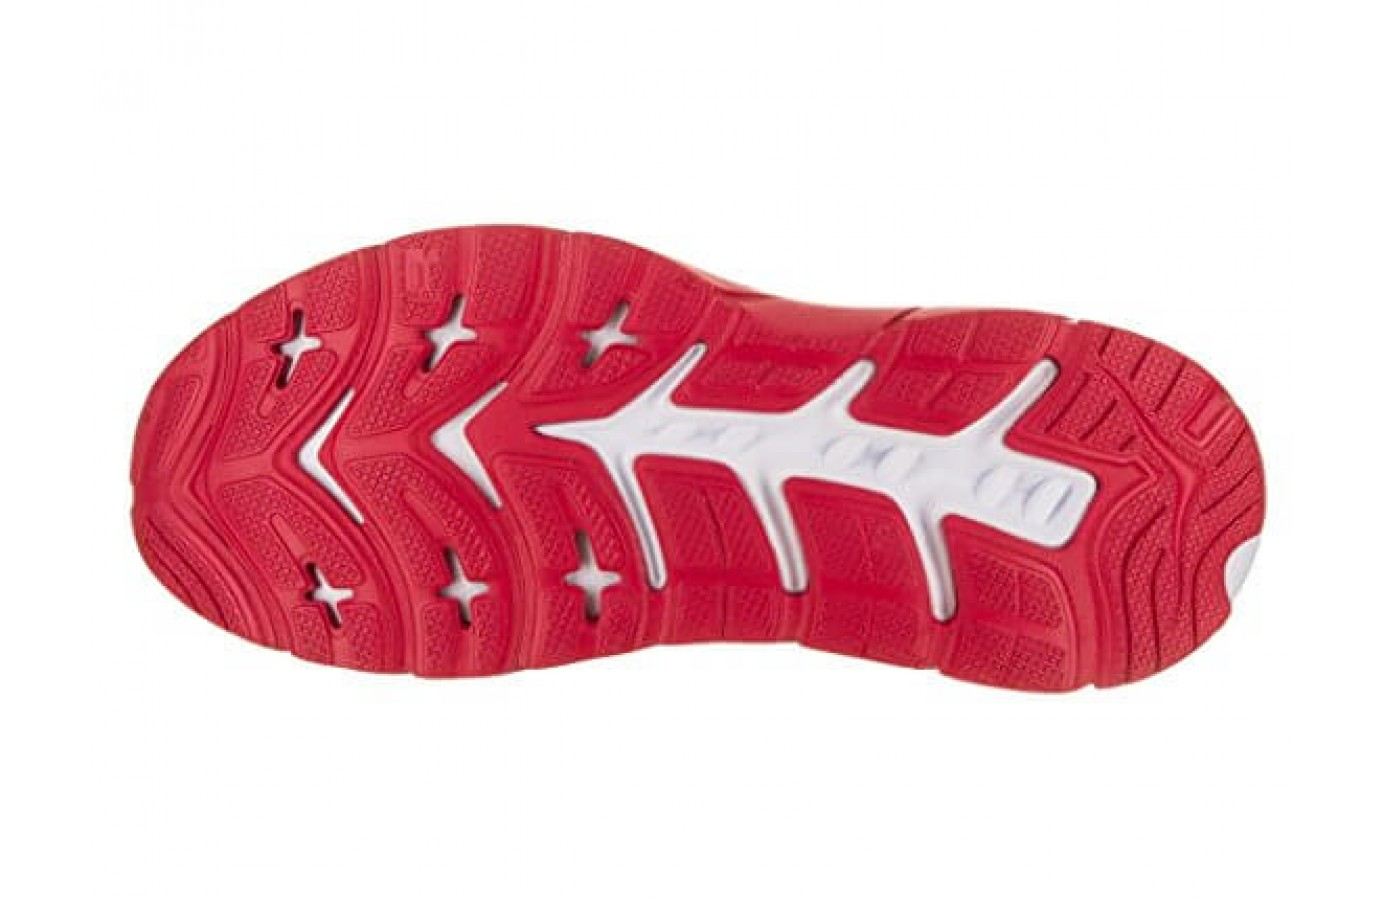 The Hoka One One Mach is built for road runs and can carry the runner for miles and miles